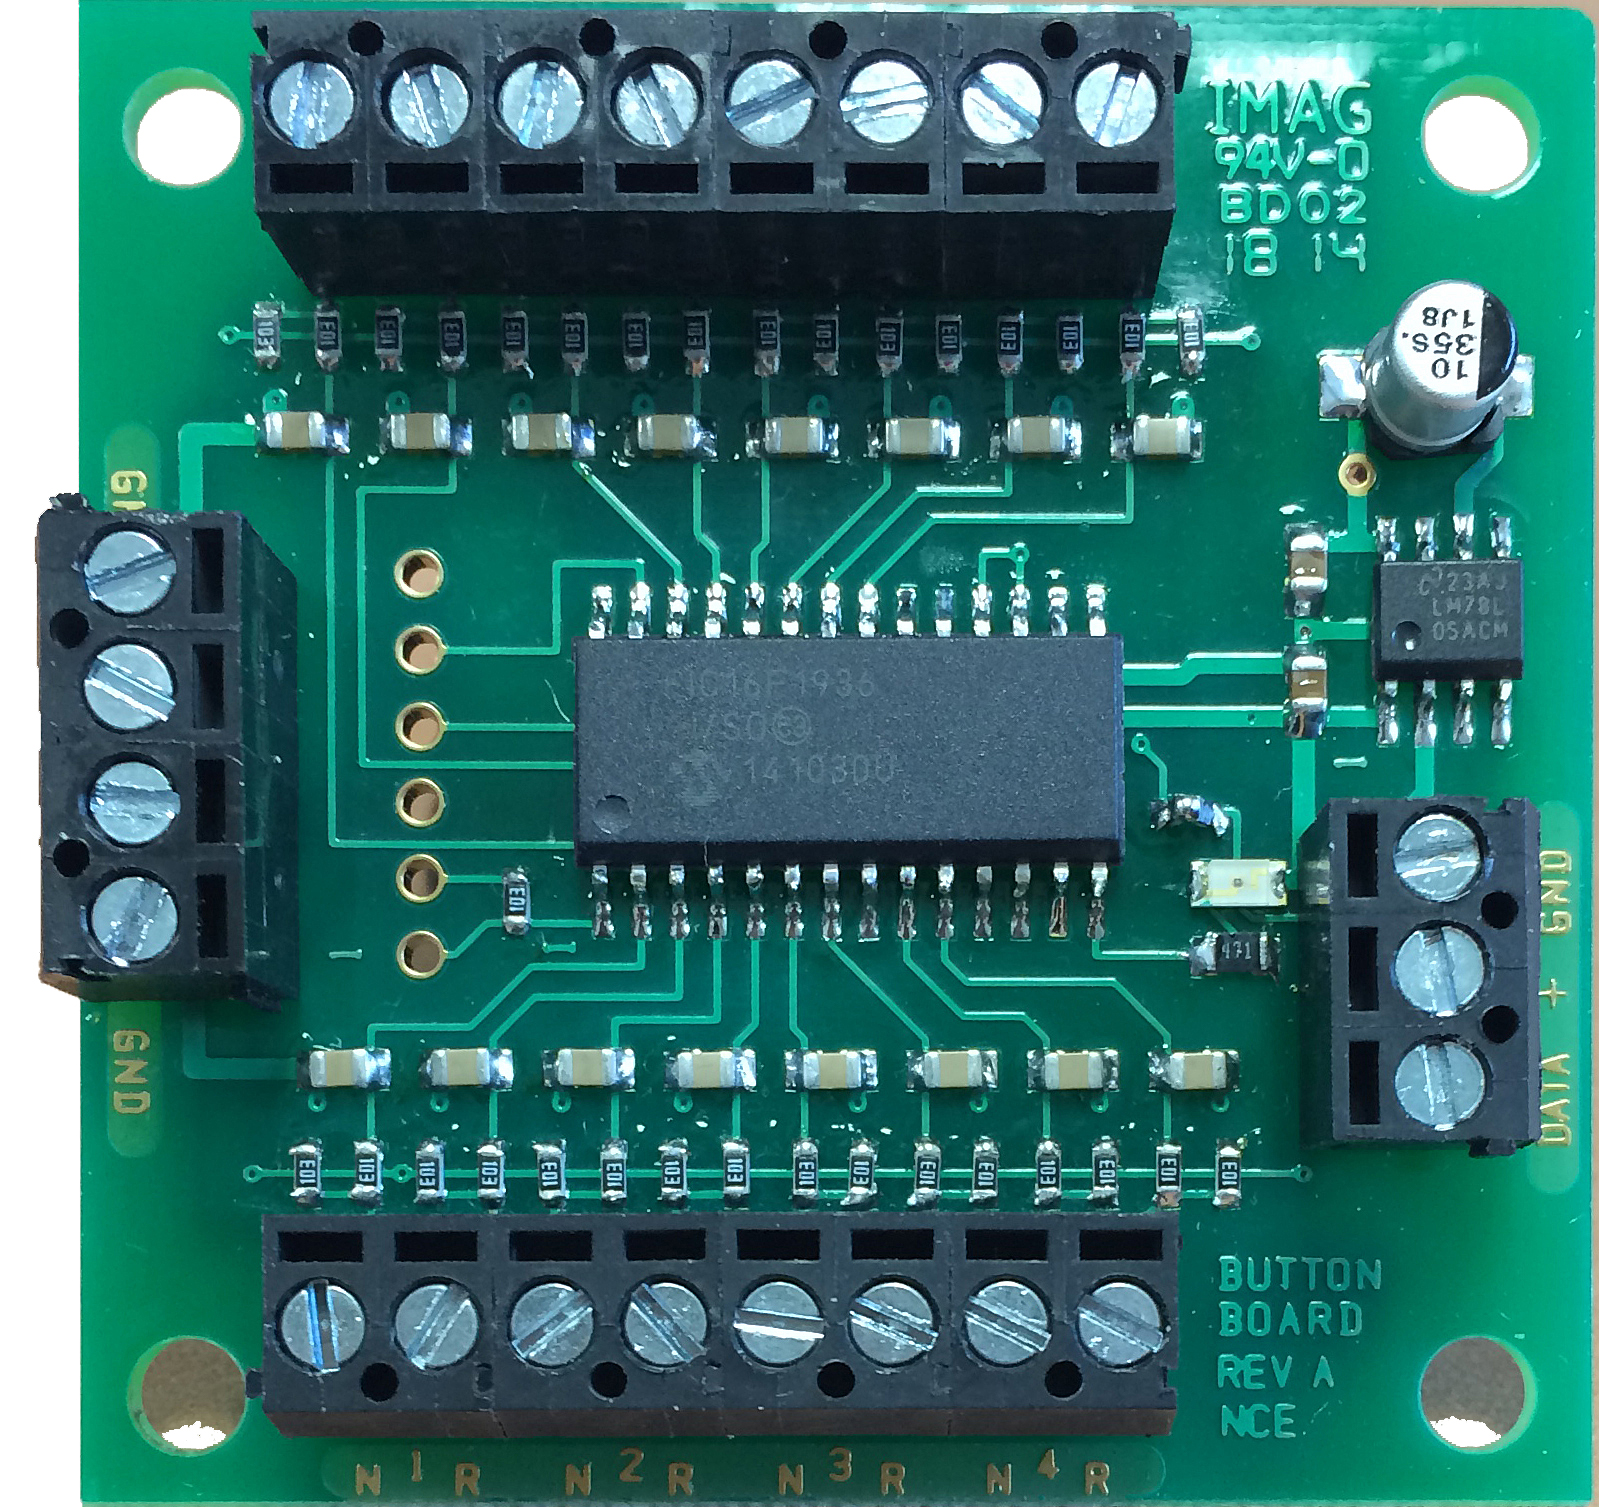 Button Board Welcome To The Nce Information Station Wiring Diagram